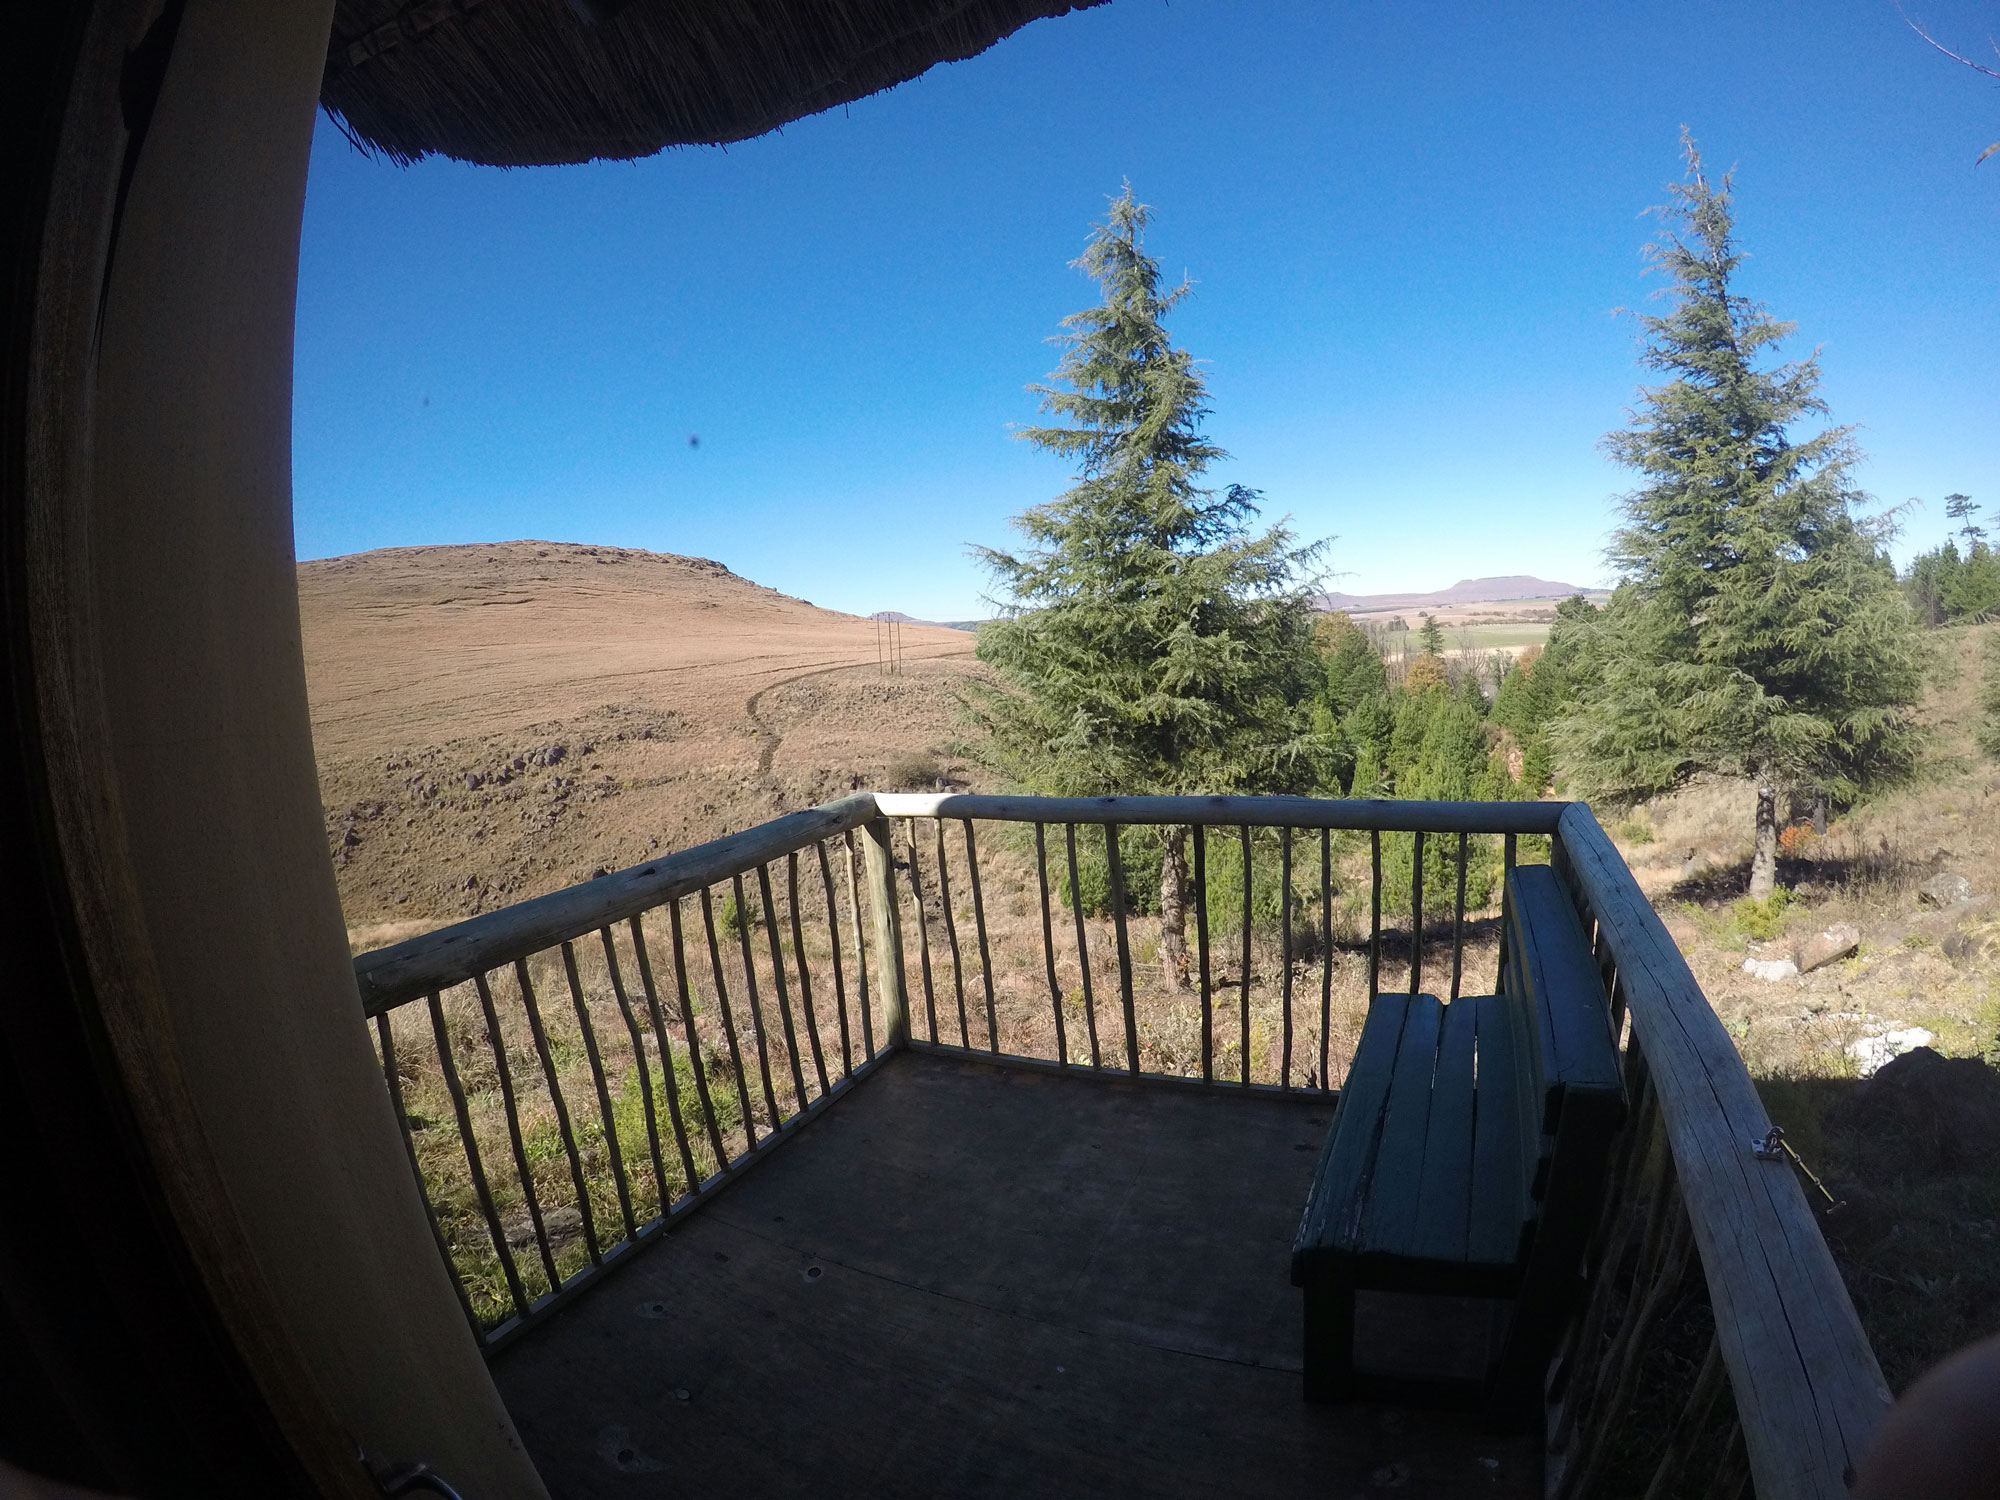 Khotso Lodge & Horse Trails | Rondawels & Log Cabin